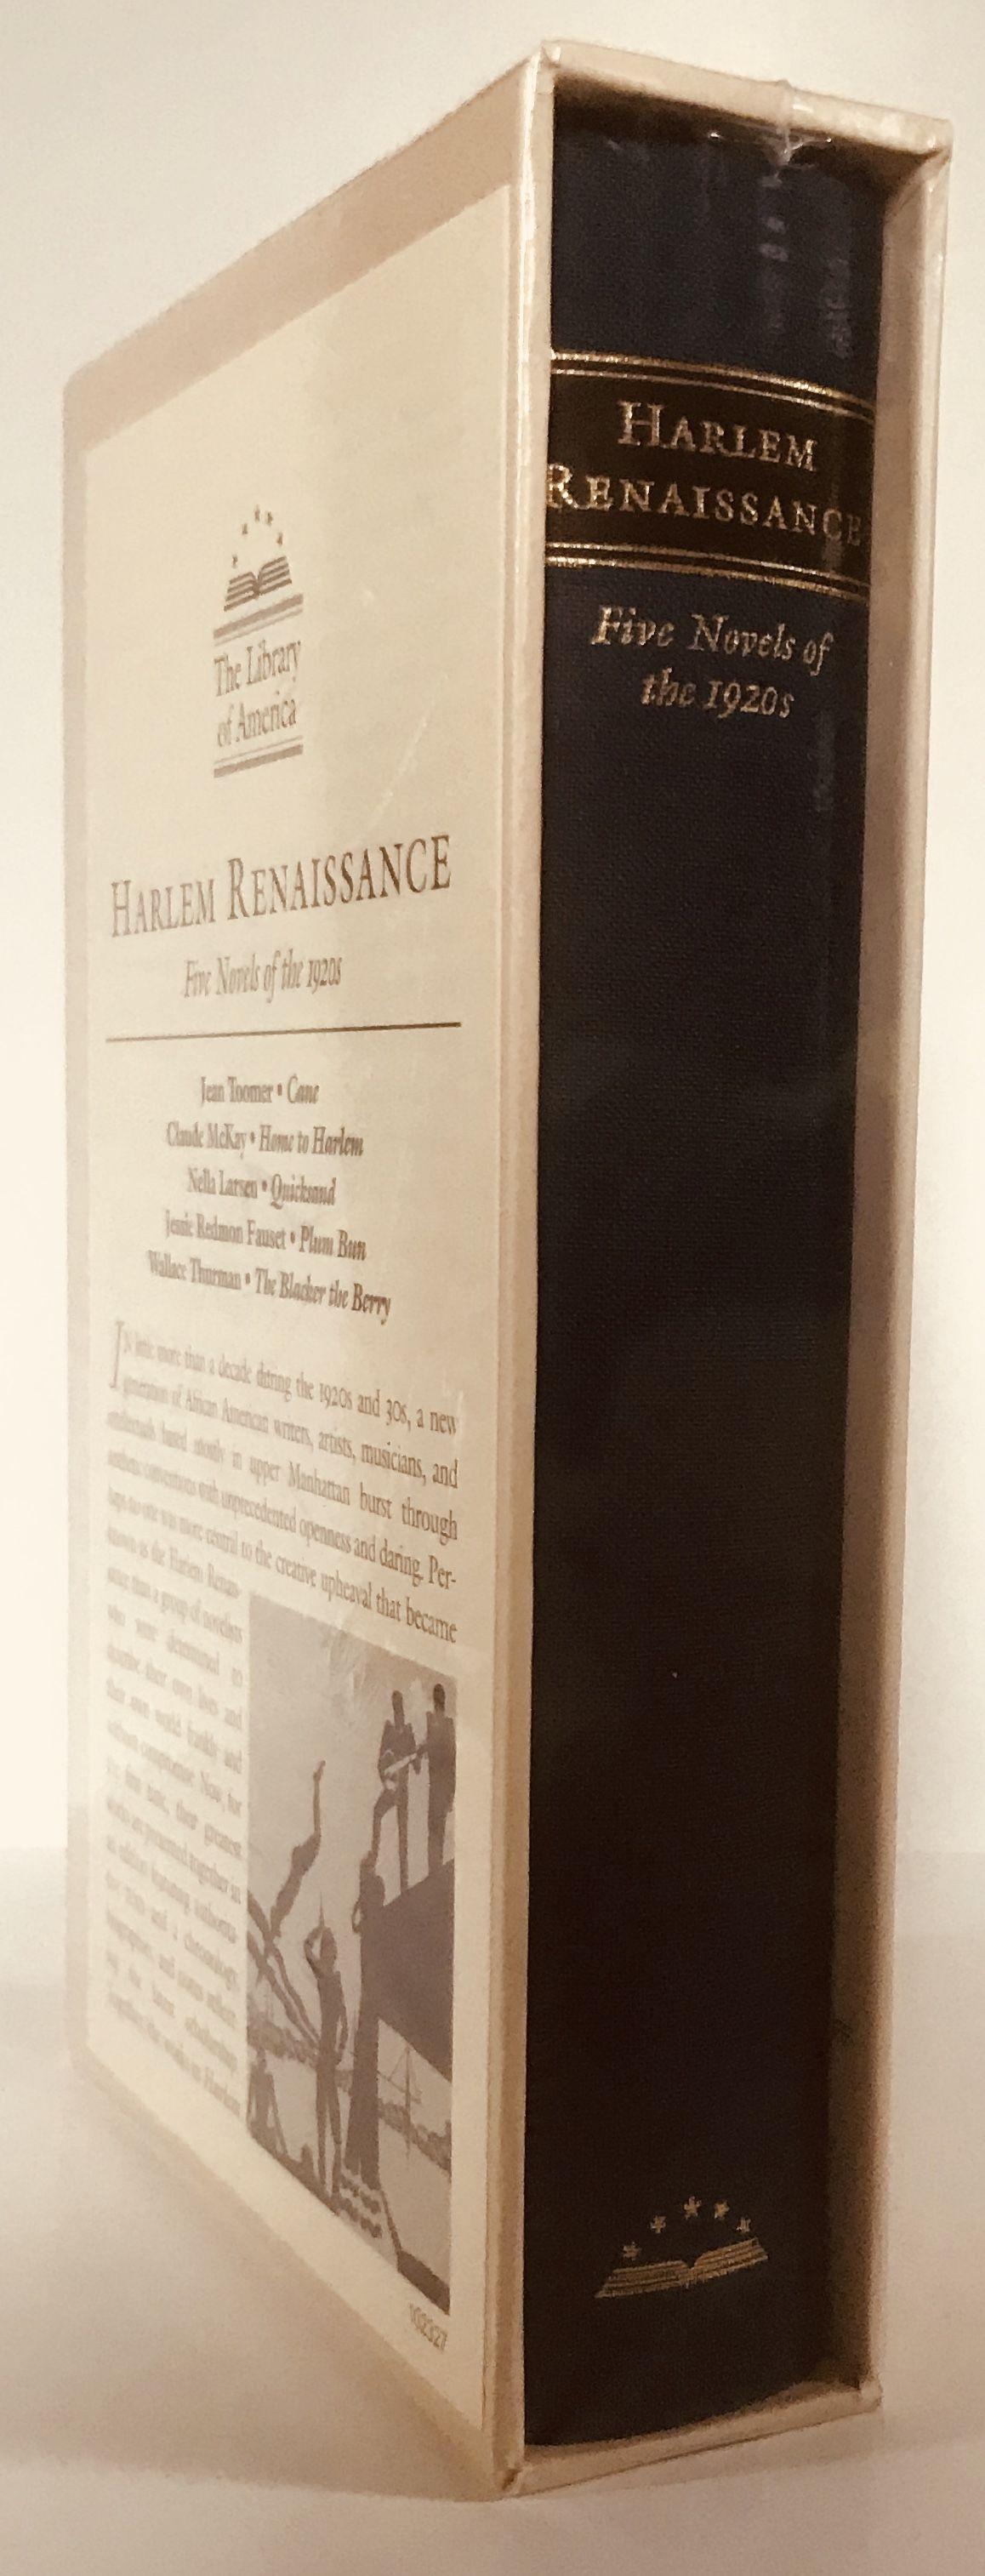 Harlem Renaissance: Five Novels of the 1920s (Library of America)